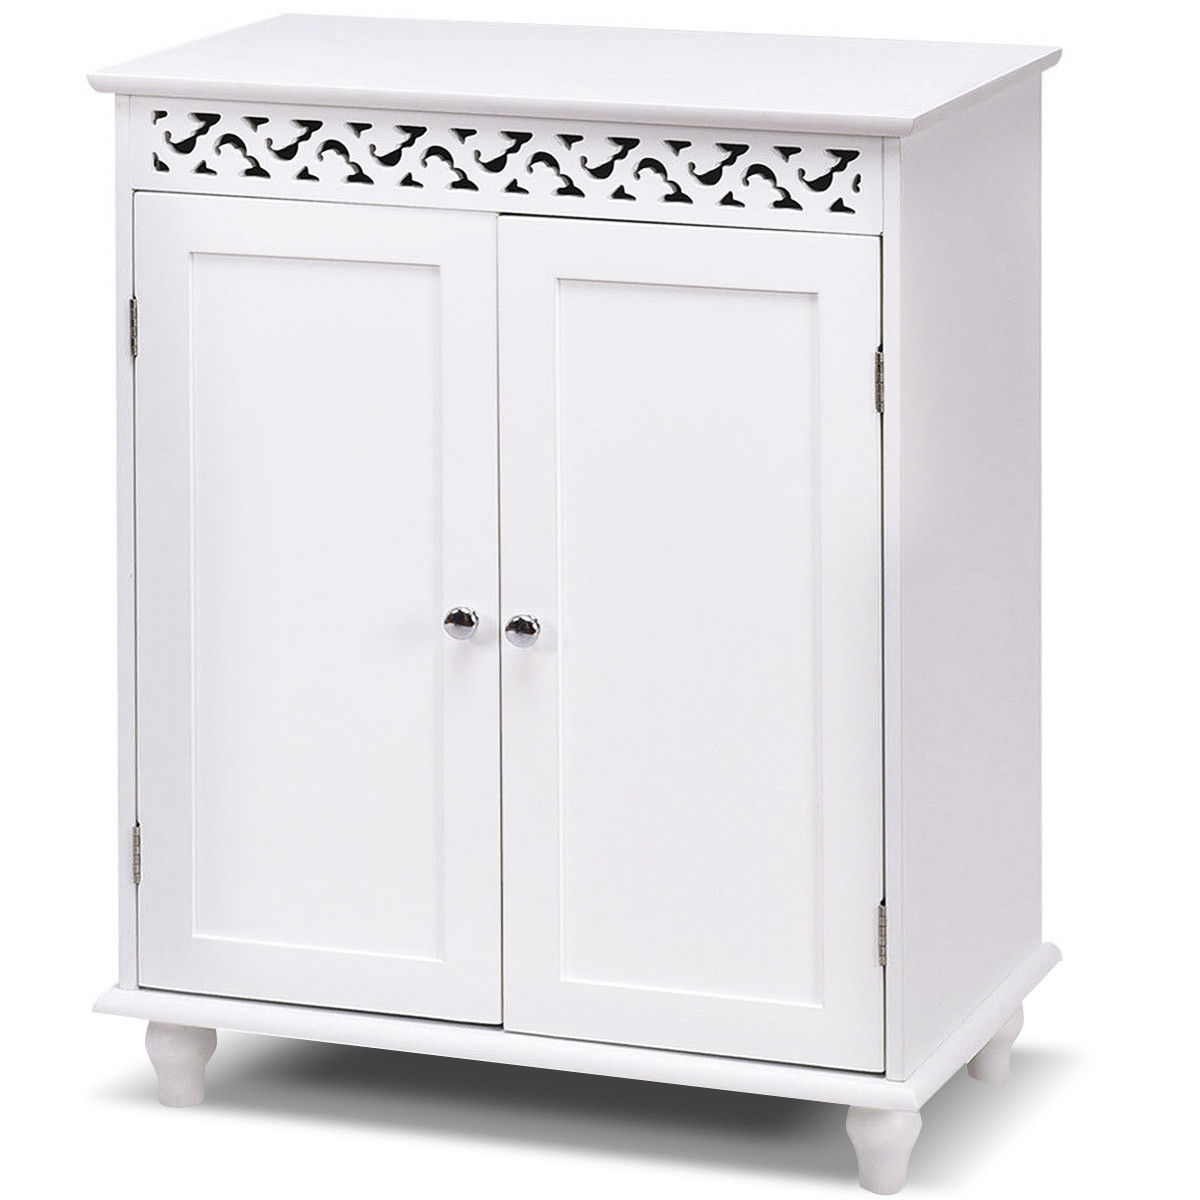 Awesome Gymax White Wooden 2 Door Bathroom Cabinet Storage Cupboard 2 Shelves Free  Standing